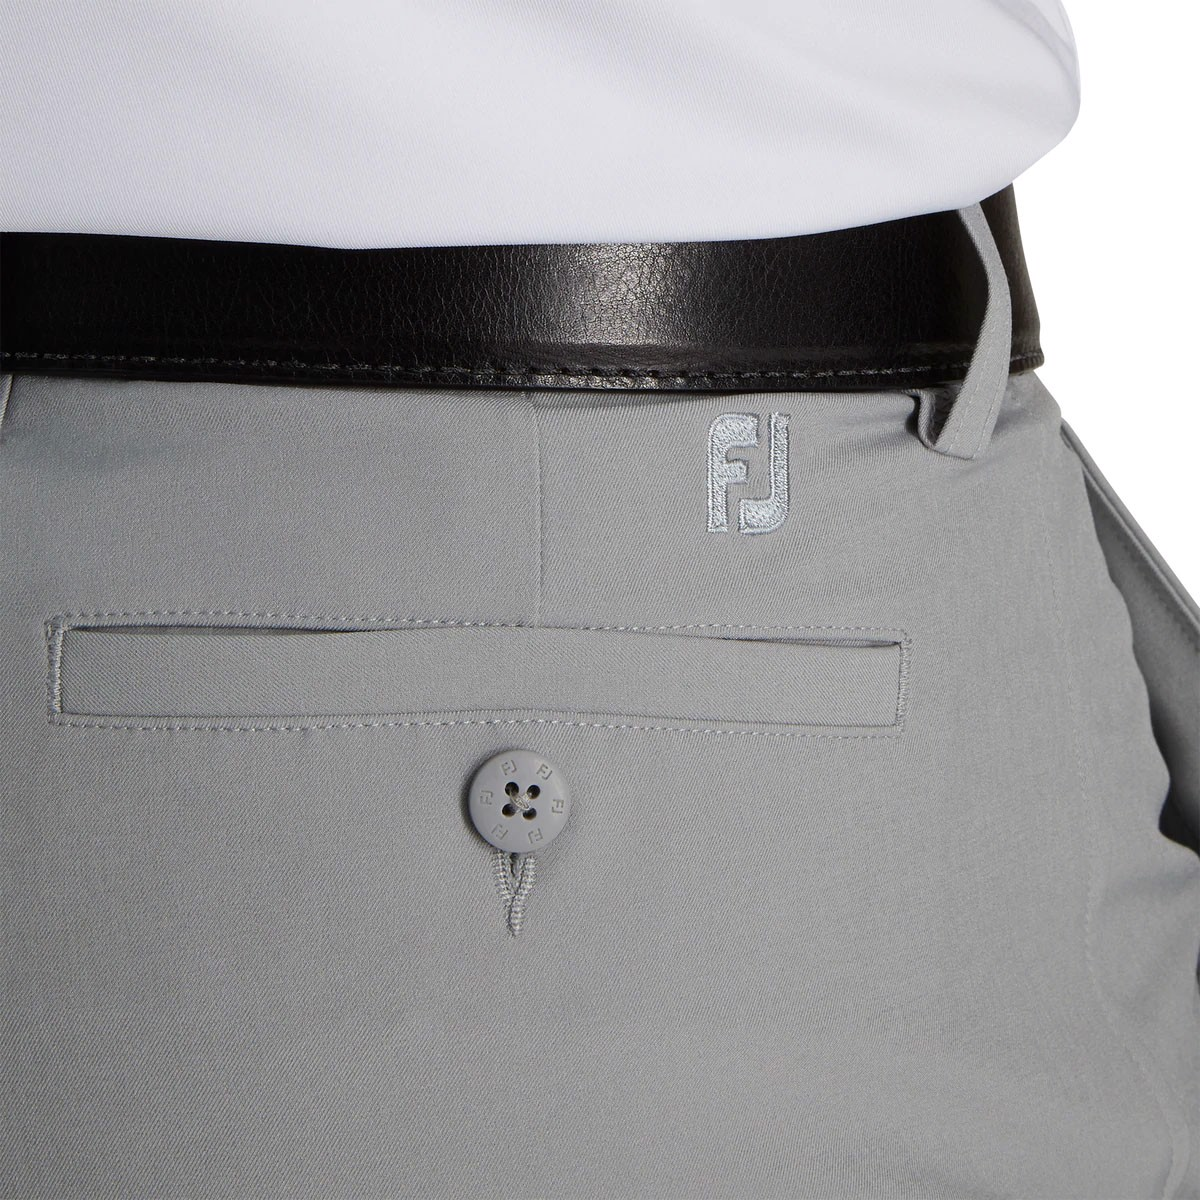 Quần short nam PERFORMANCE 93714 Xám | FootJoy